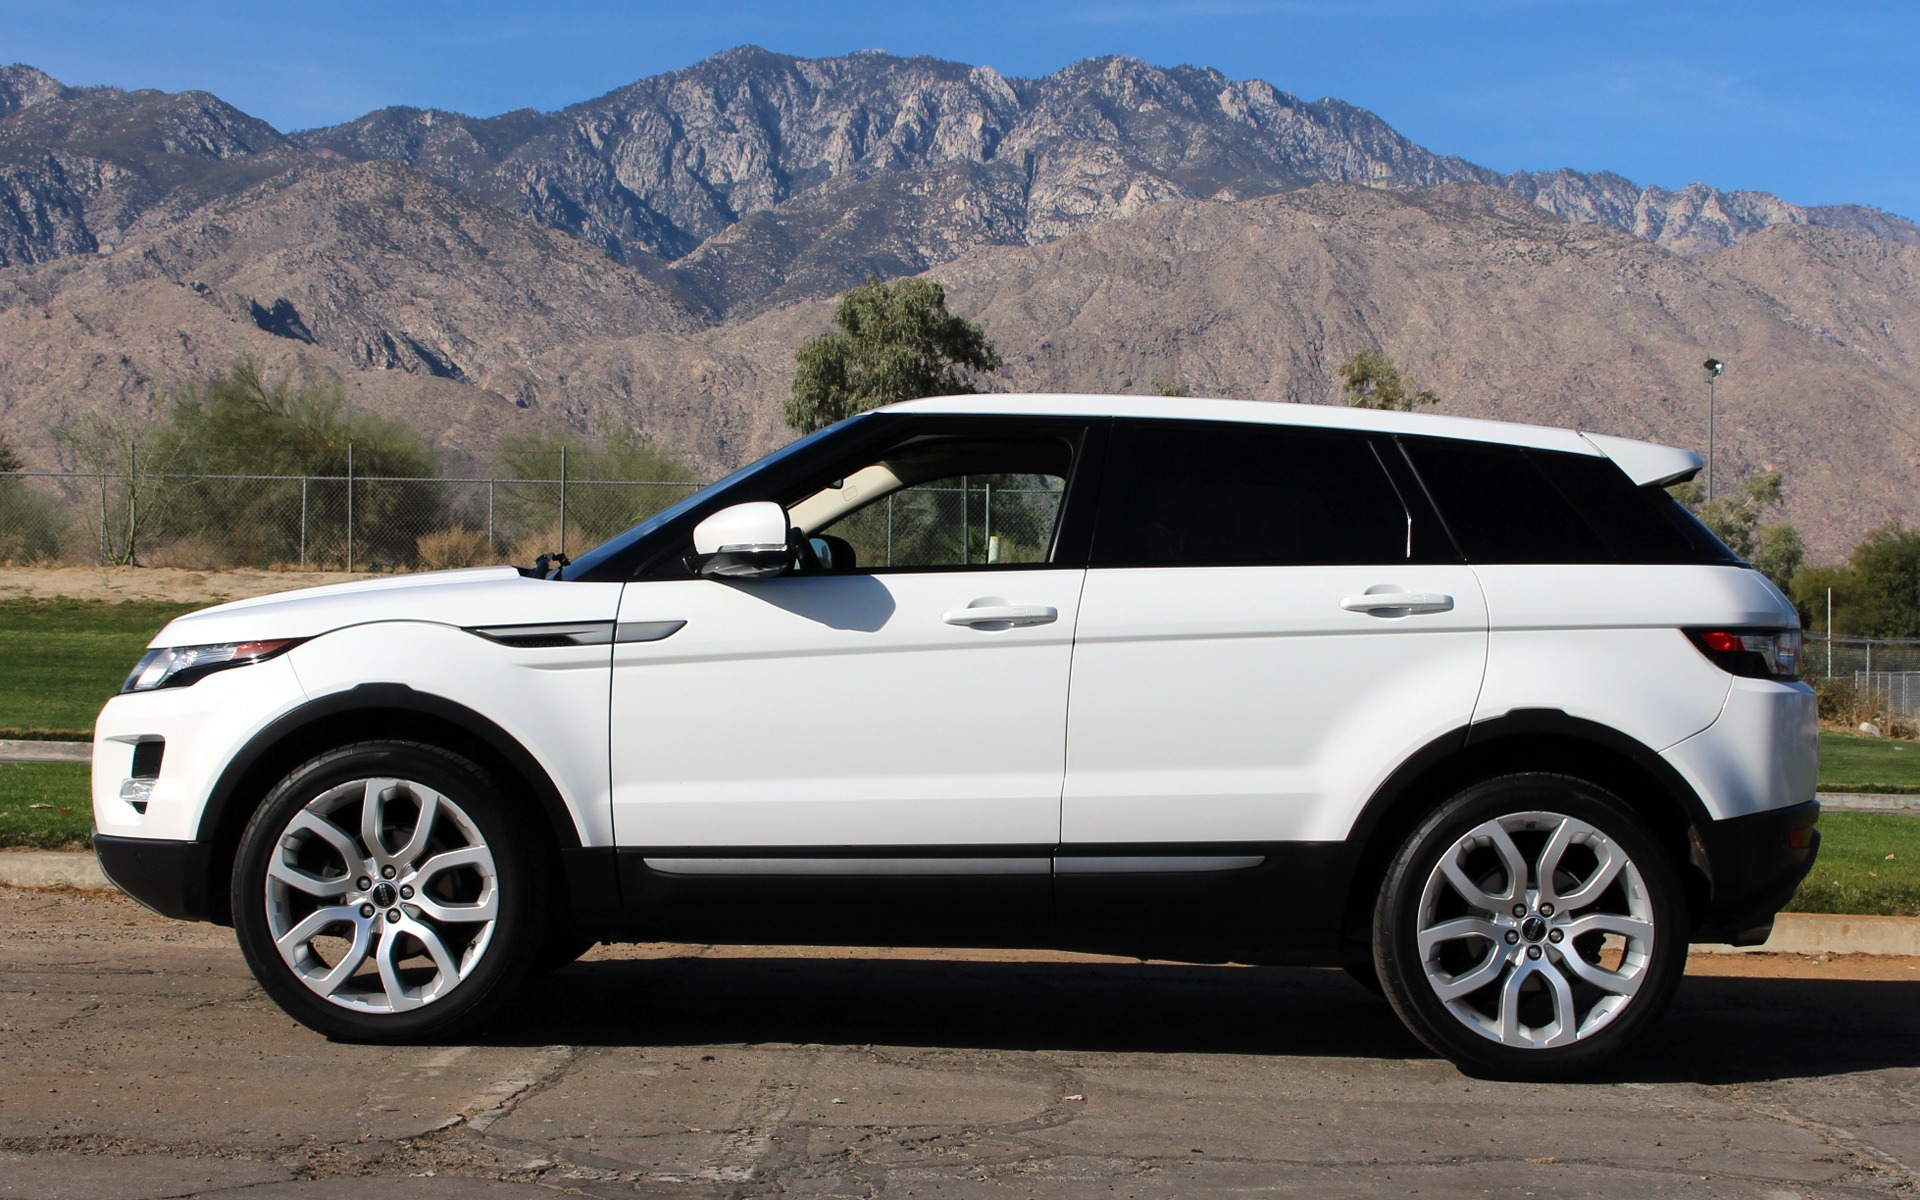 2012 land rover range rover evoque pure premium stock lr16 for sale near palm springs ca ca. Black Bedroom Furniture Sets. Home Design Ideas